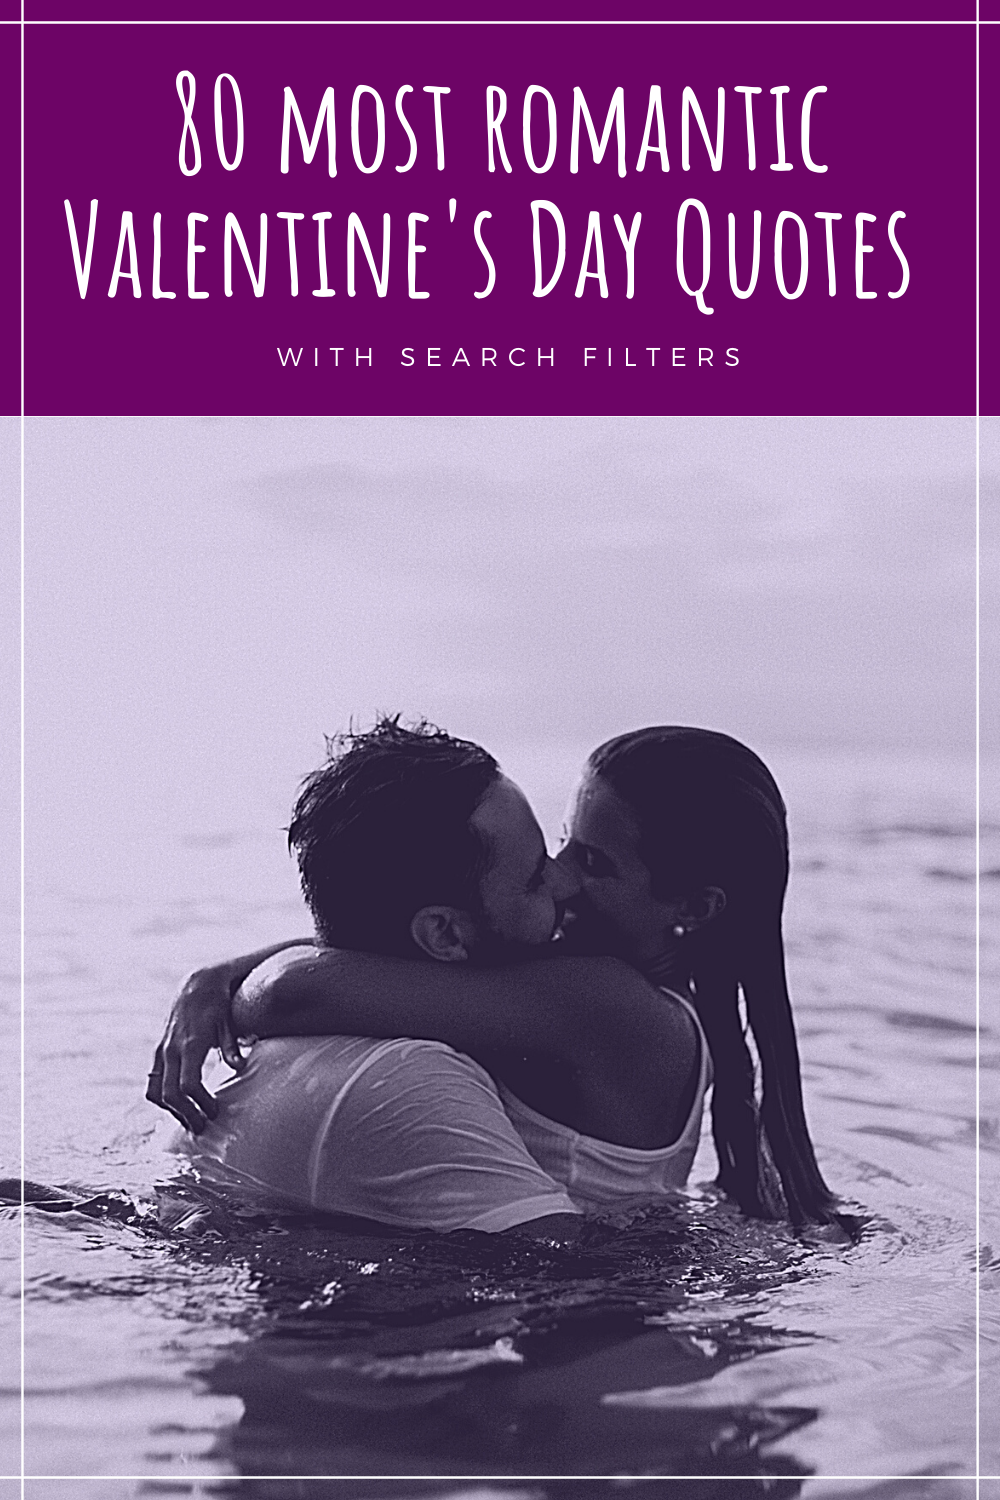 Image of sensual couple kissing in the water